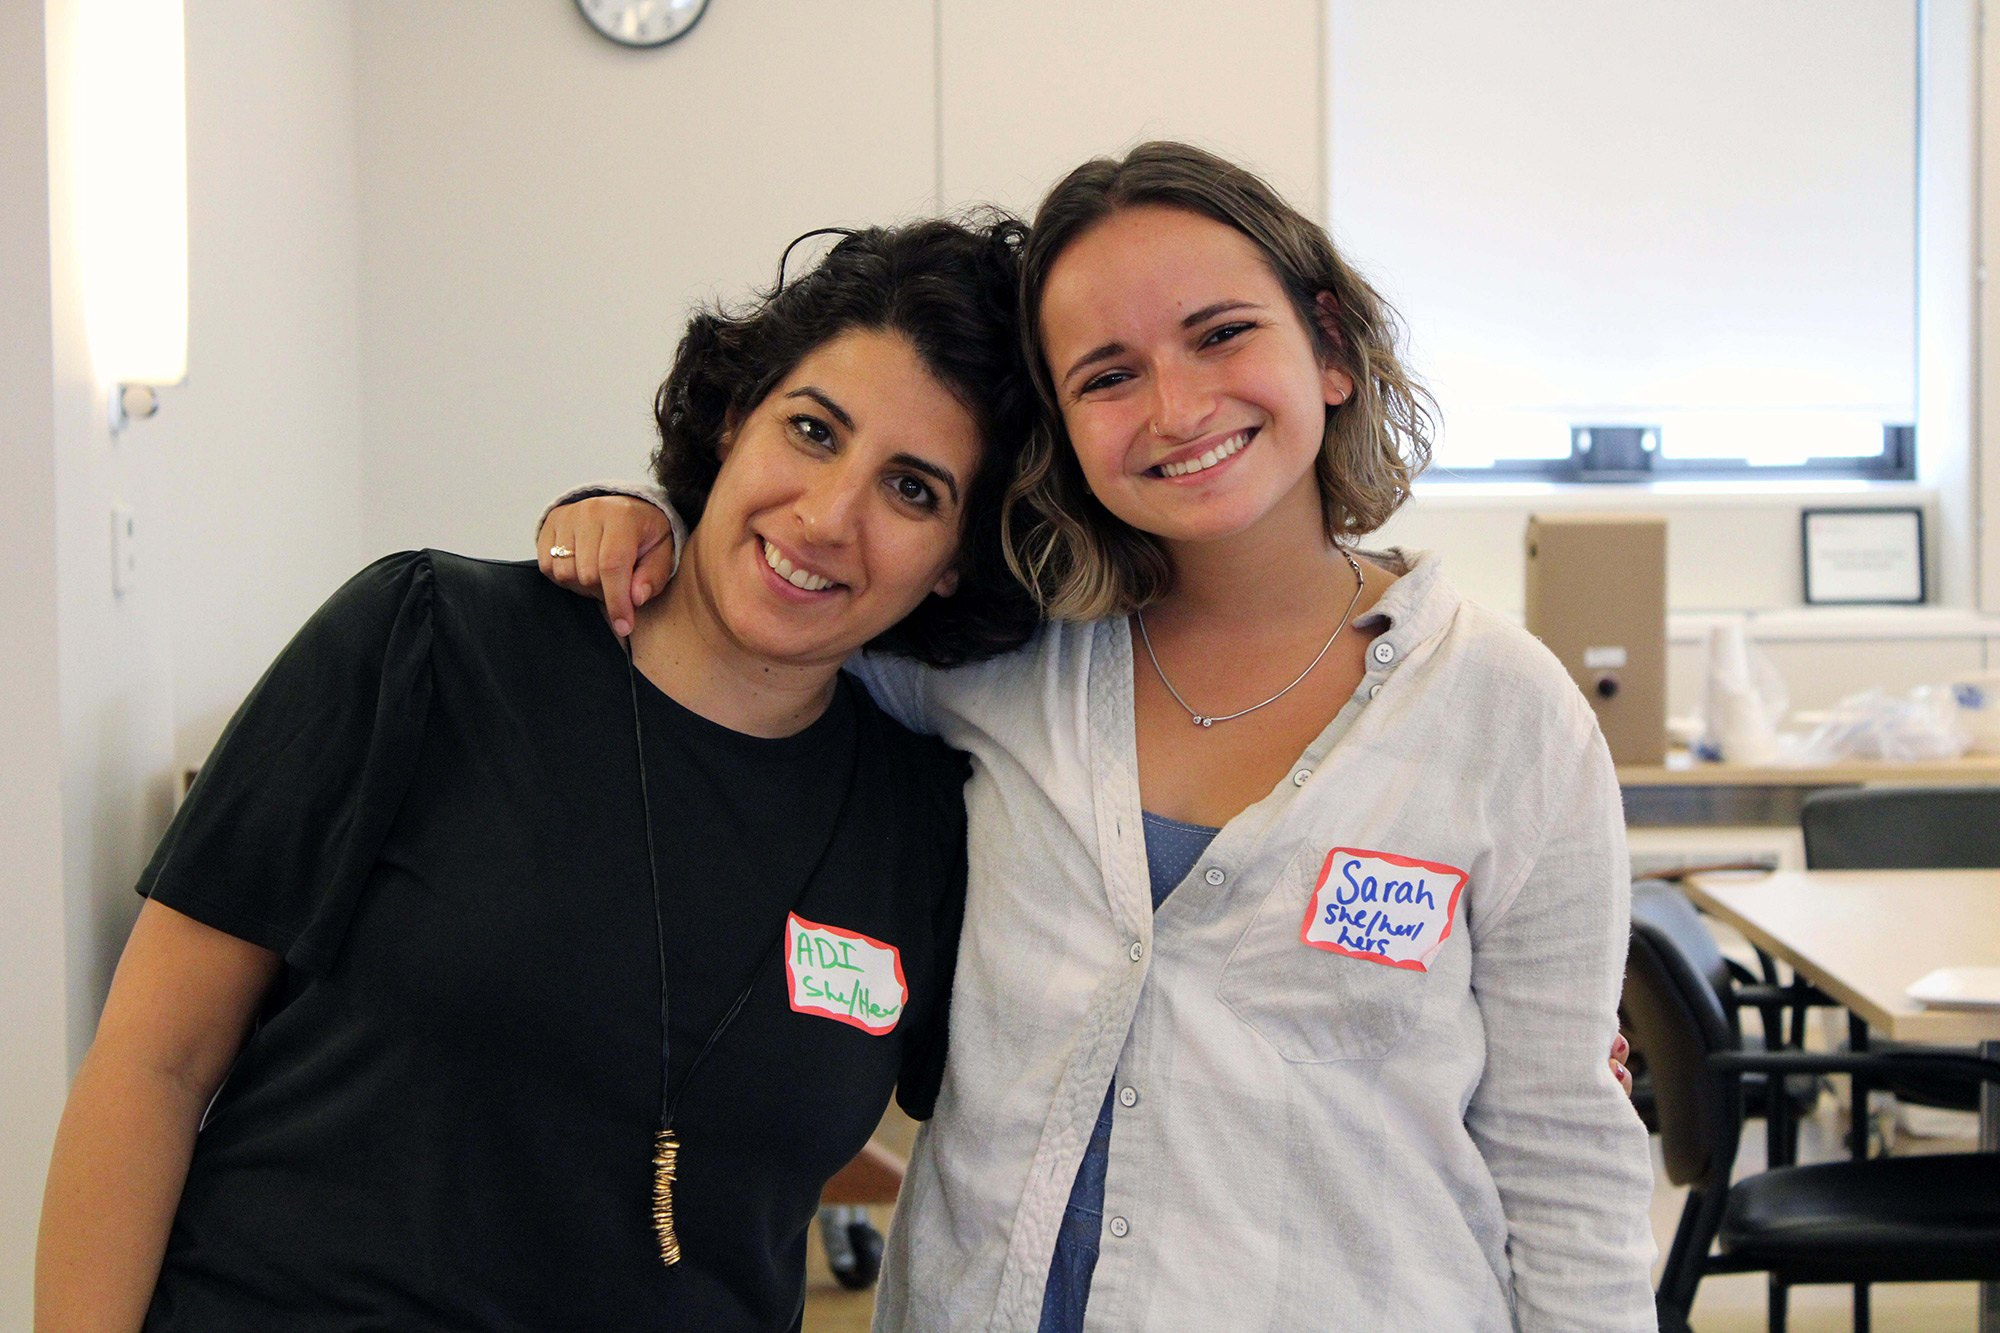 Adi Grabiner Keinan PhD '15, with Sarah Aiken '18, an IDP alum who assisted with facilitator training in spring 2020.